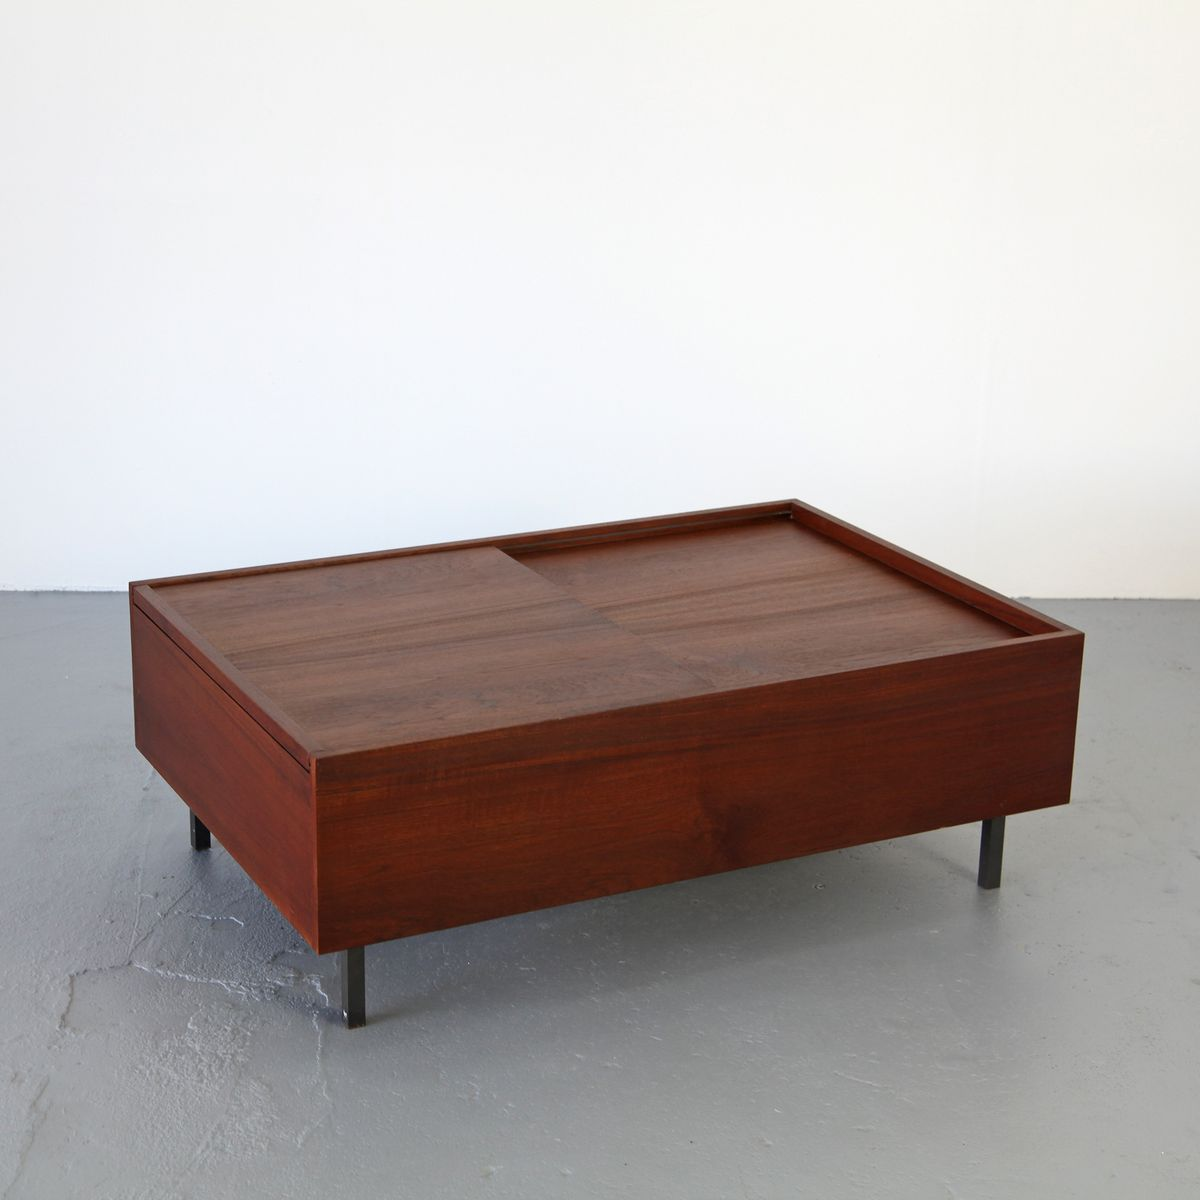 Mcm Teak Coffee Table: Mid Century Modern Teak Coffee Table With Removable Top